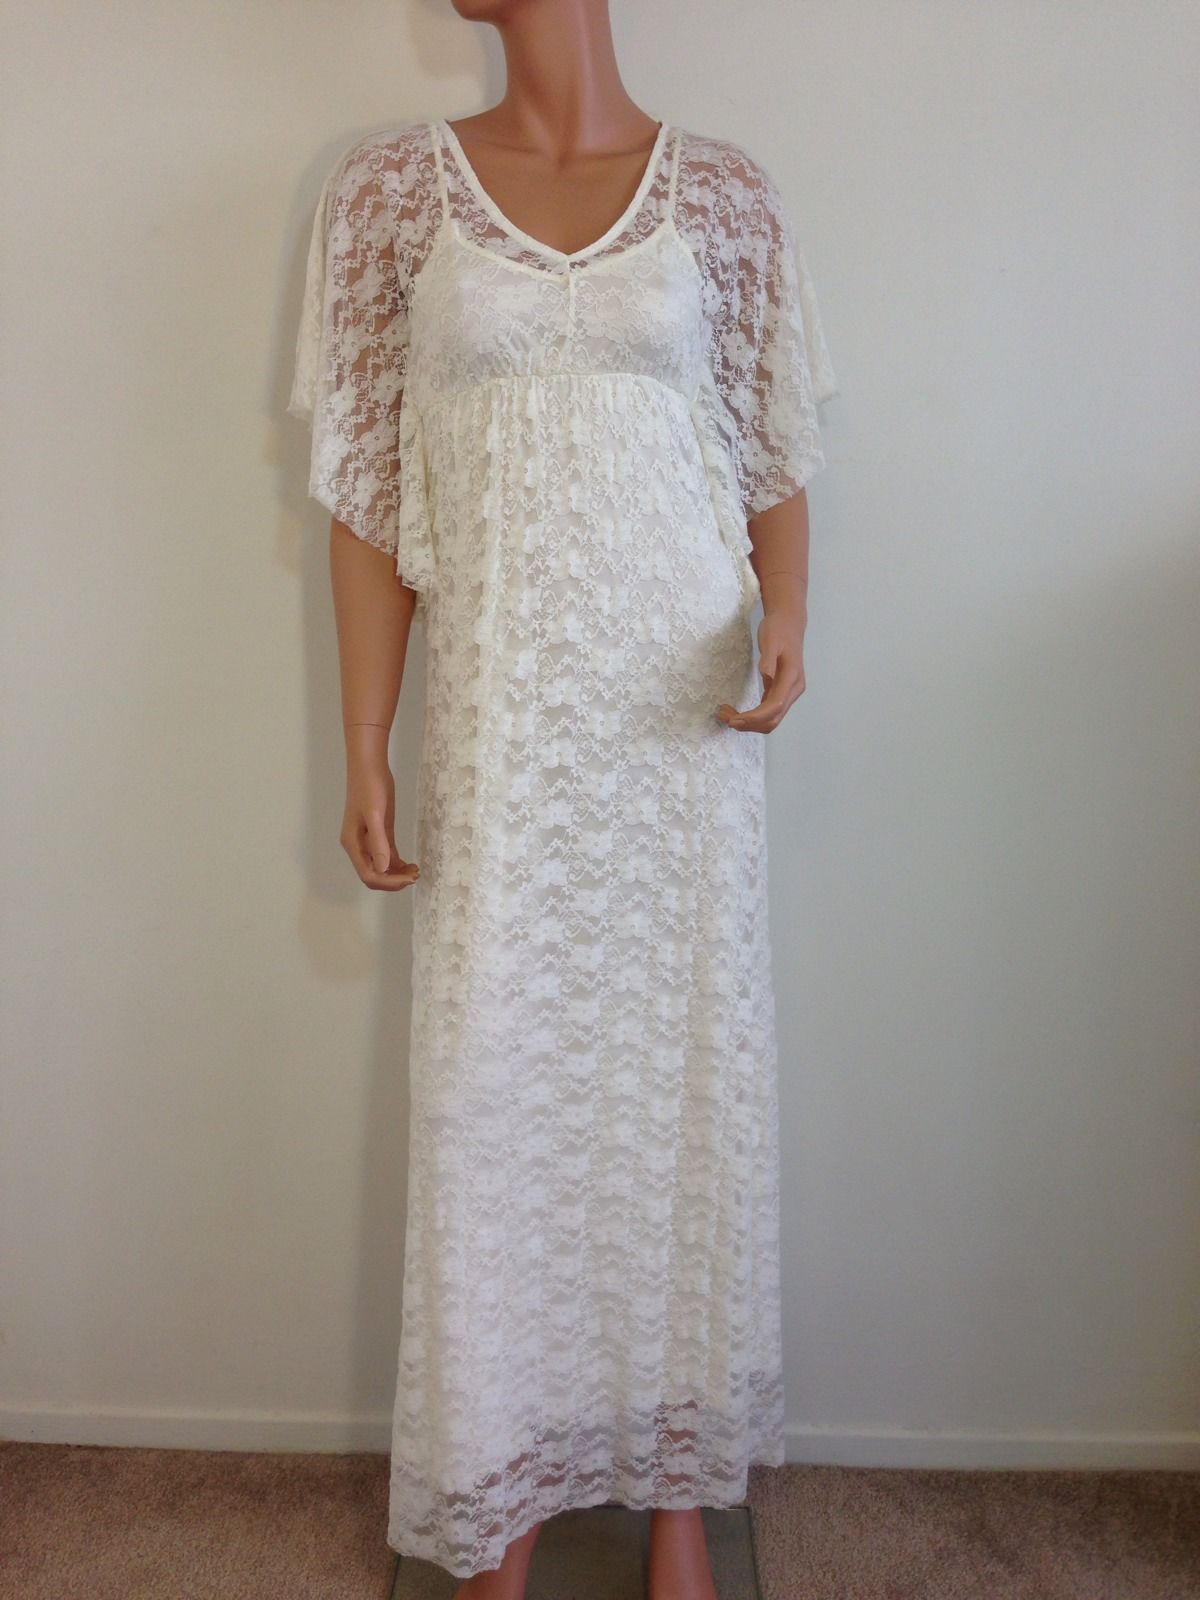 White lace maxi dress wedding 1920s gatsby inspired bridal for Lace maxi wedding dress